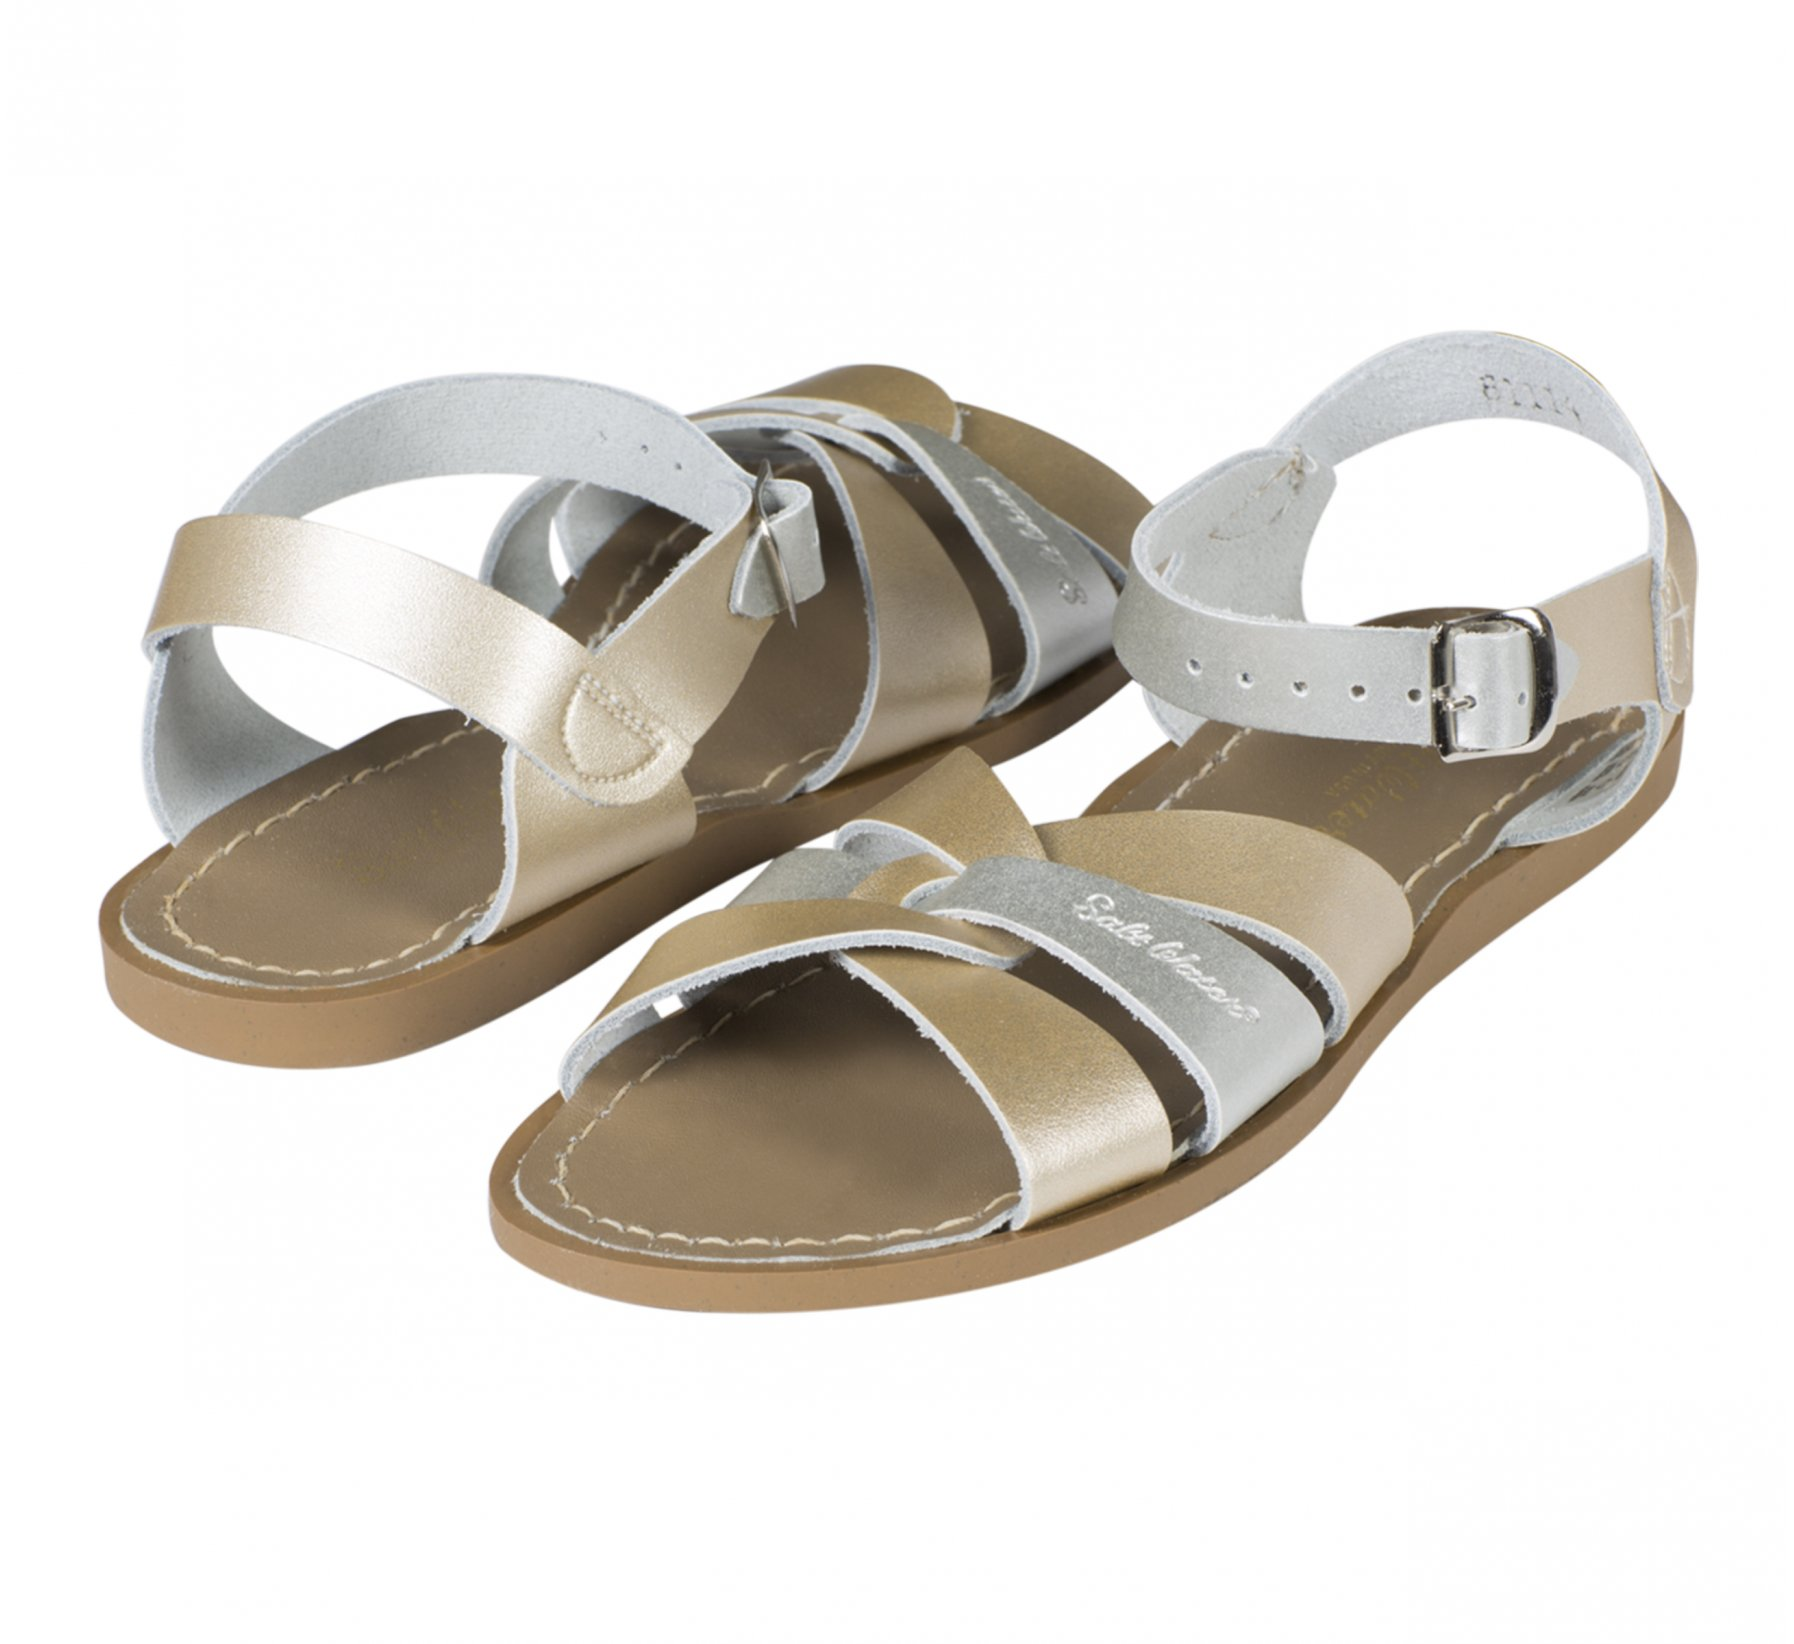 Original Mash-up Argent - Salt Water Sandals